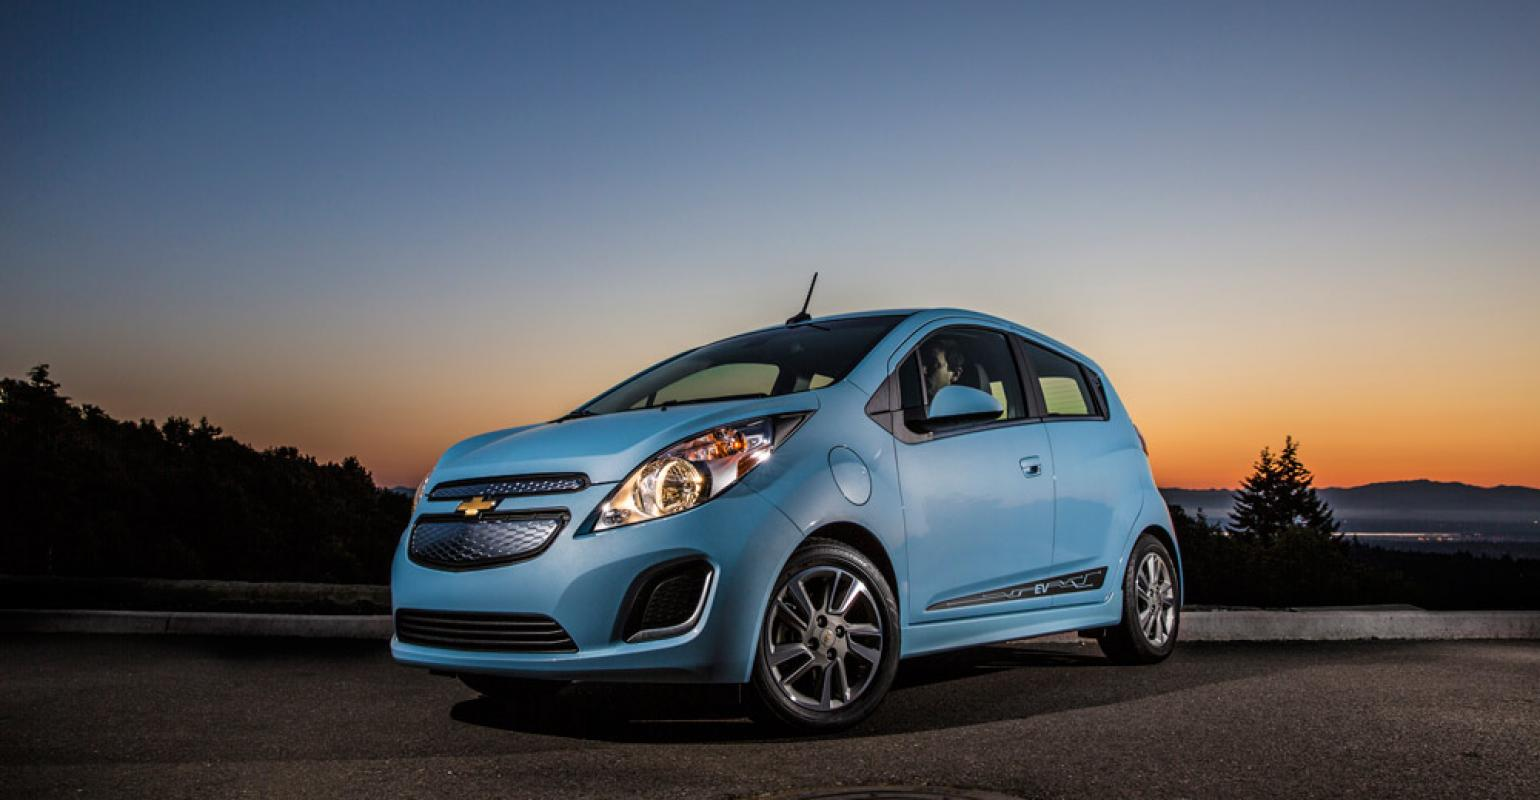 Rsquo14 Chevy Spark EV Welldone Execution Of Emerging Technology. U0027